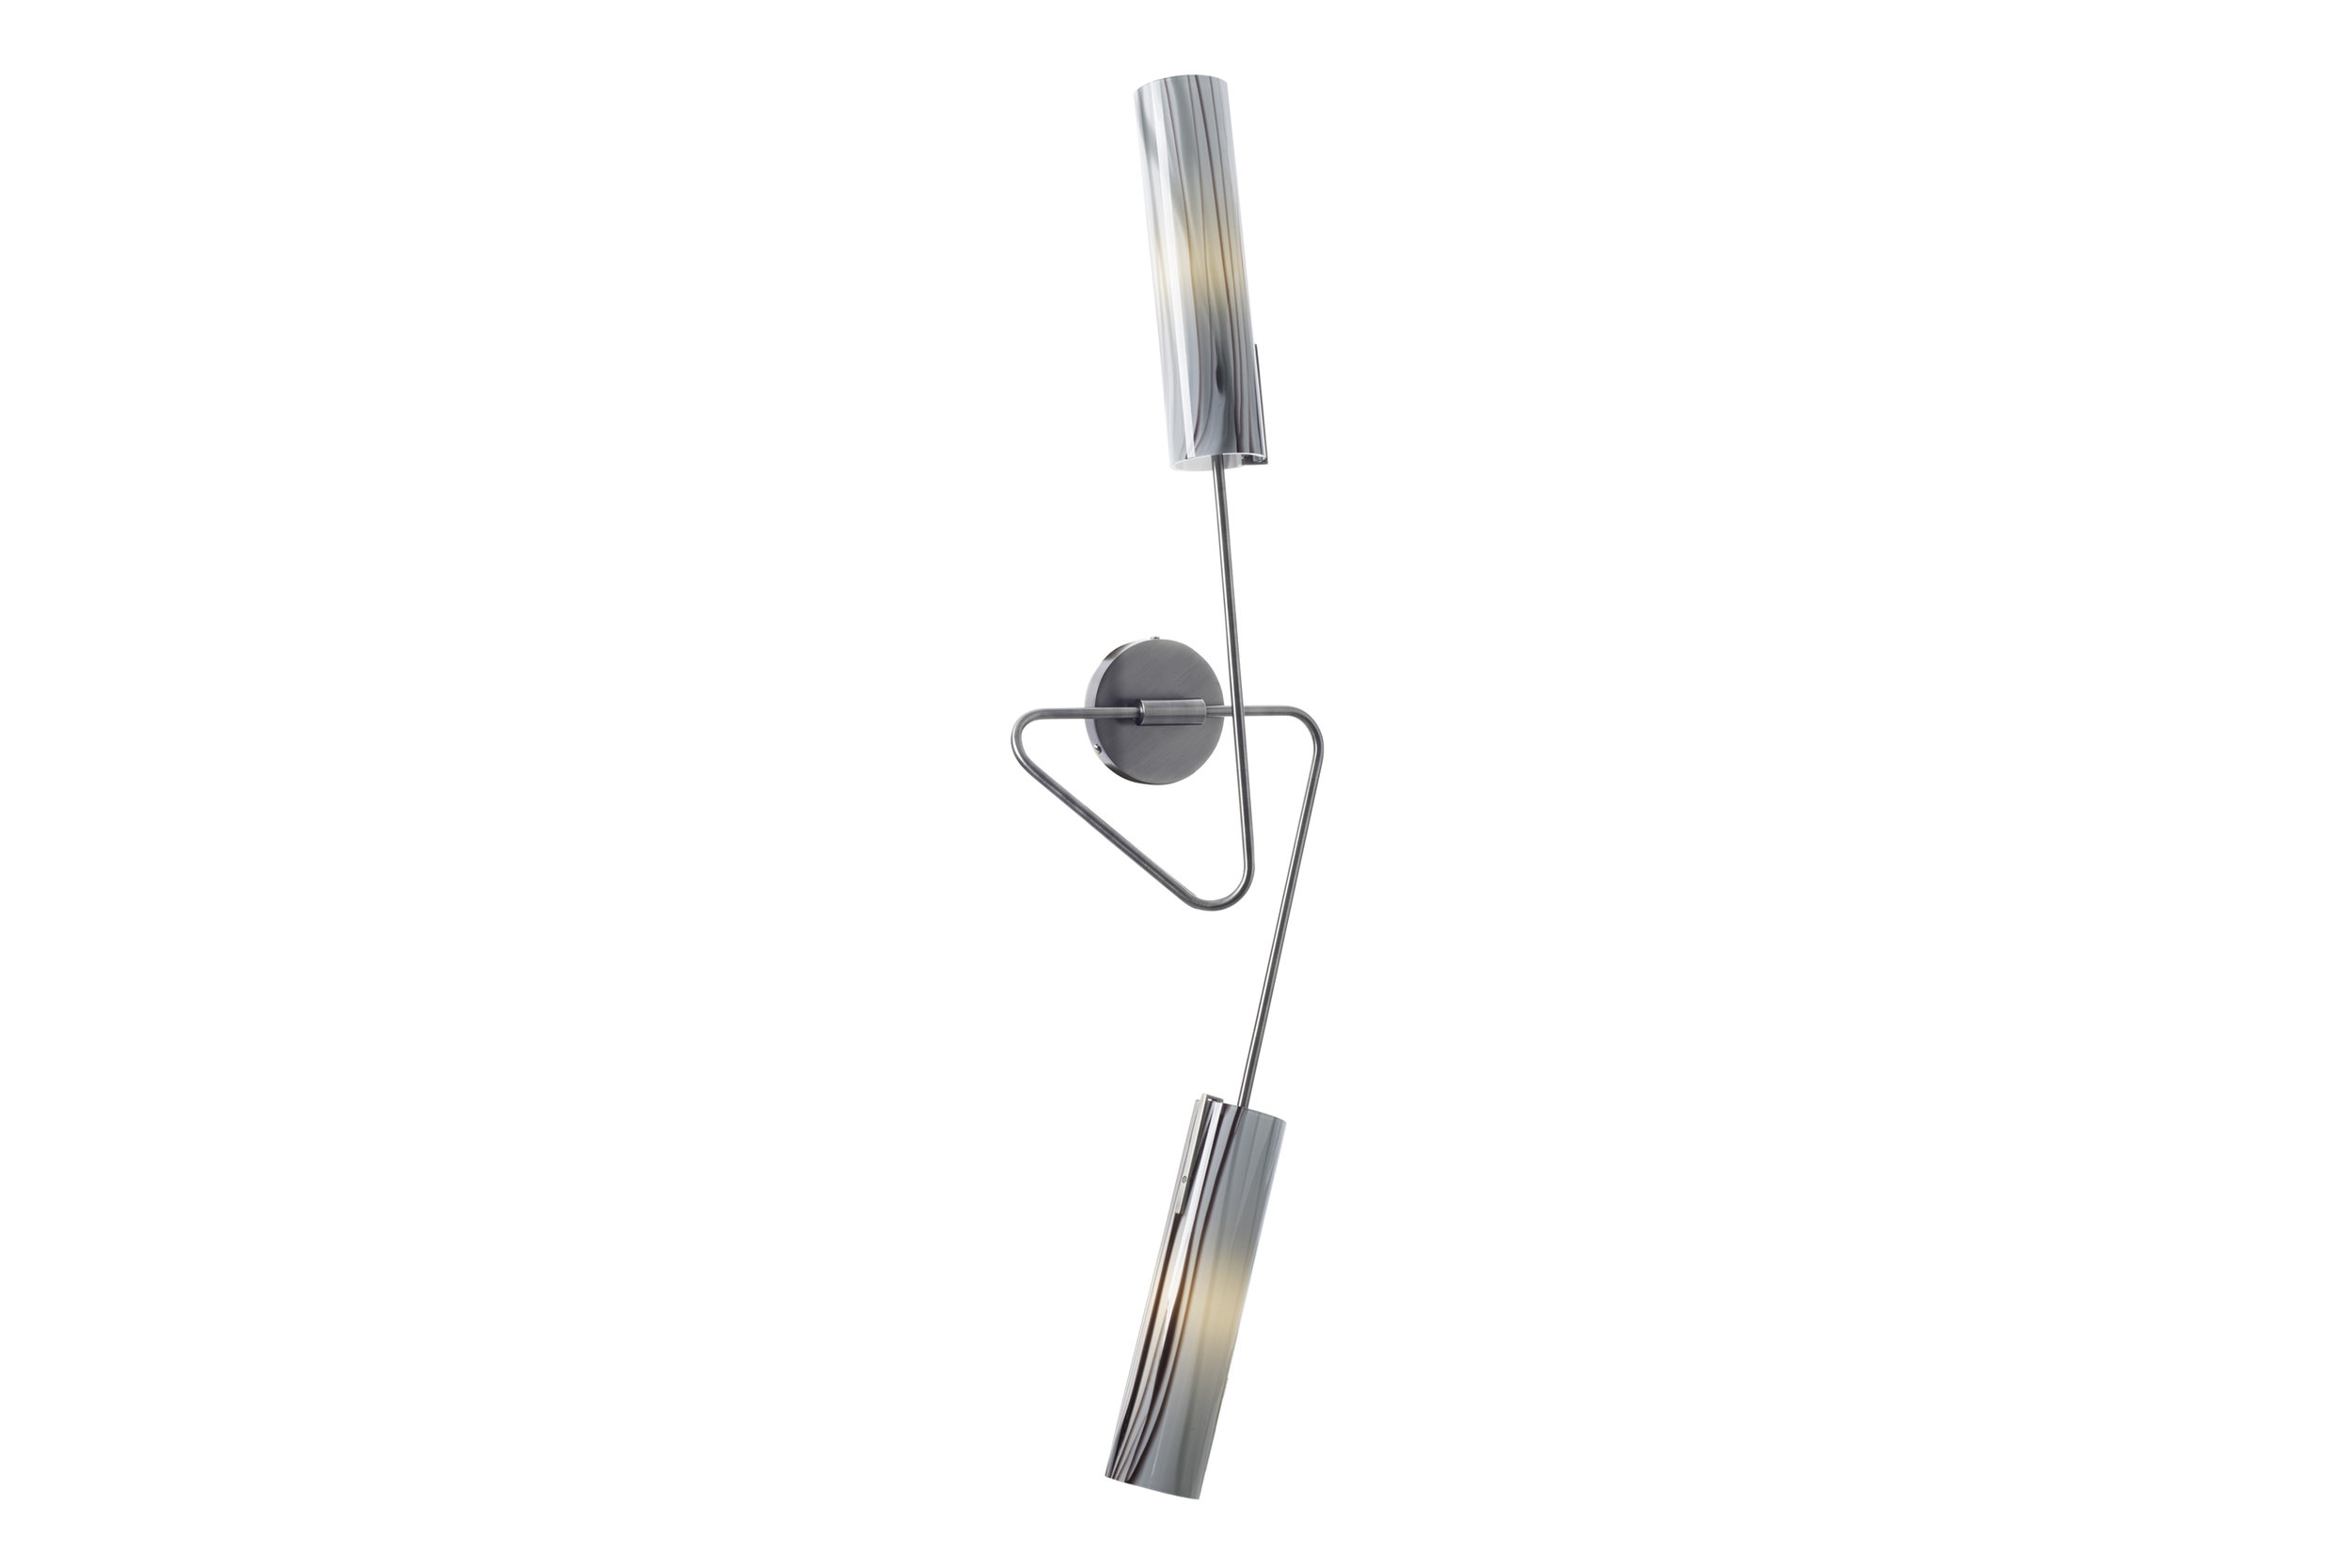 Avram_Rusu_Continuum_Sconce_Model_2_3.jpg